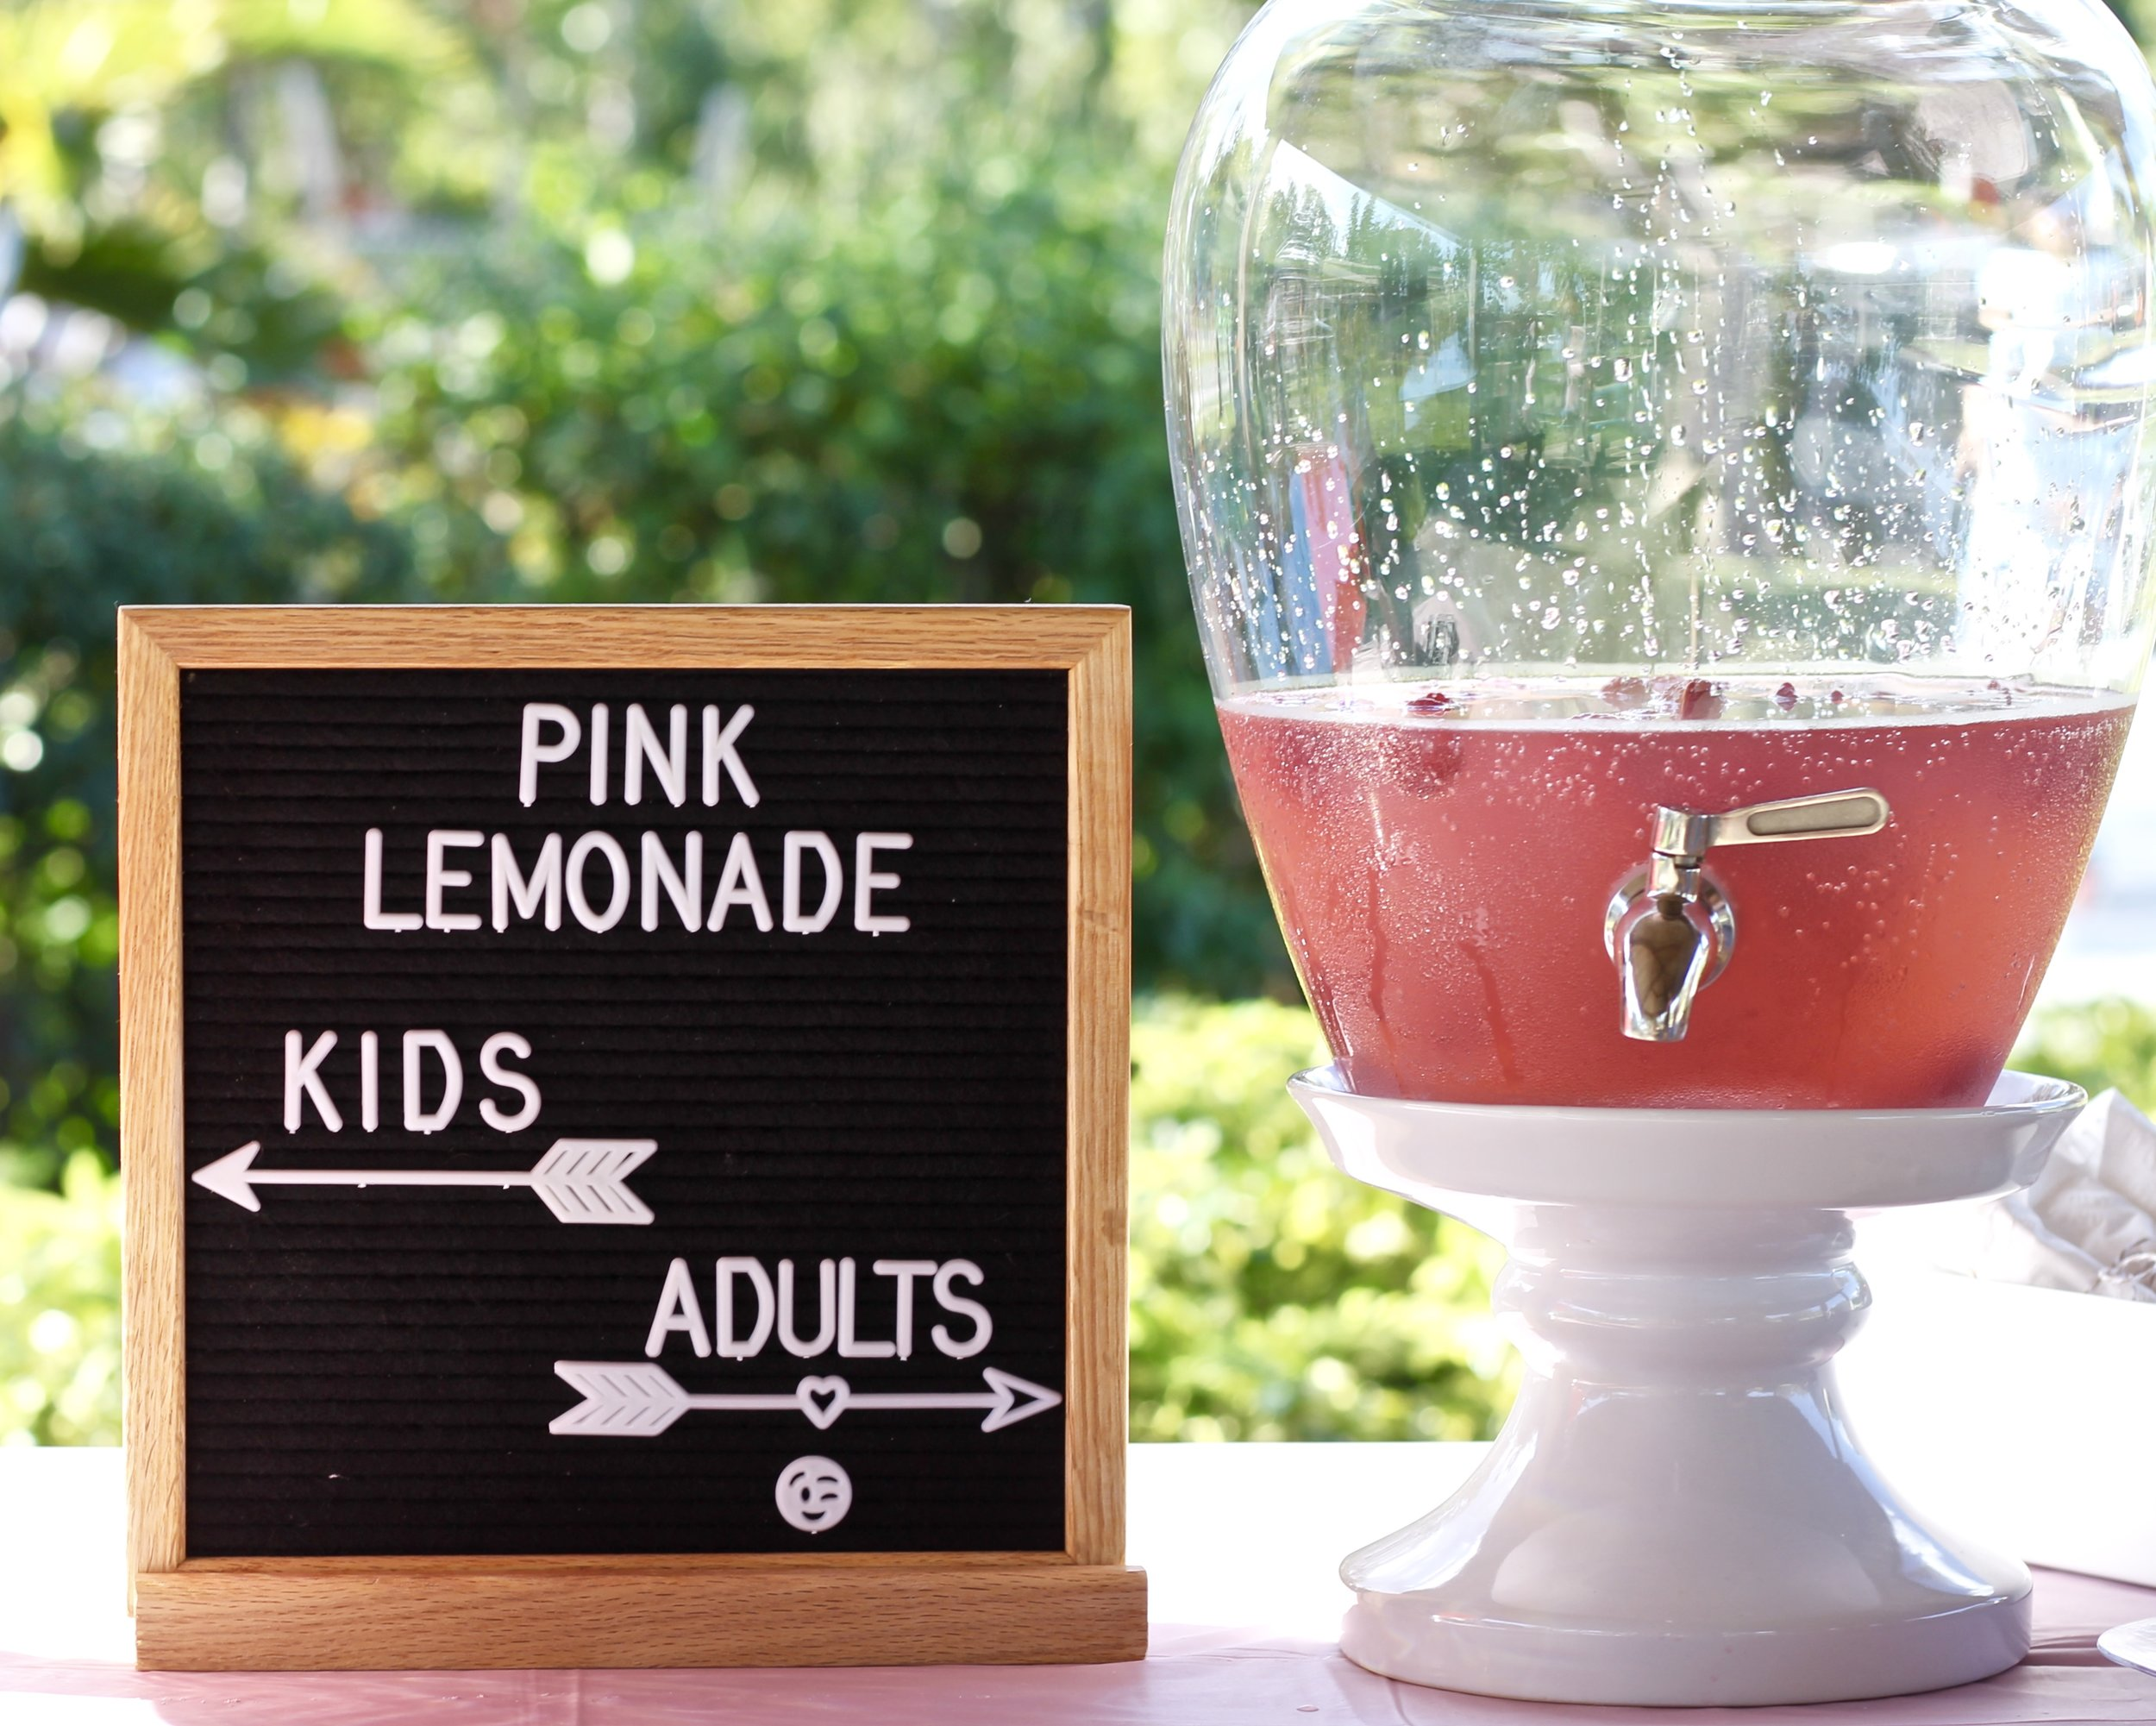 Spiked pink lemonade recipe.